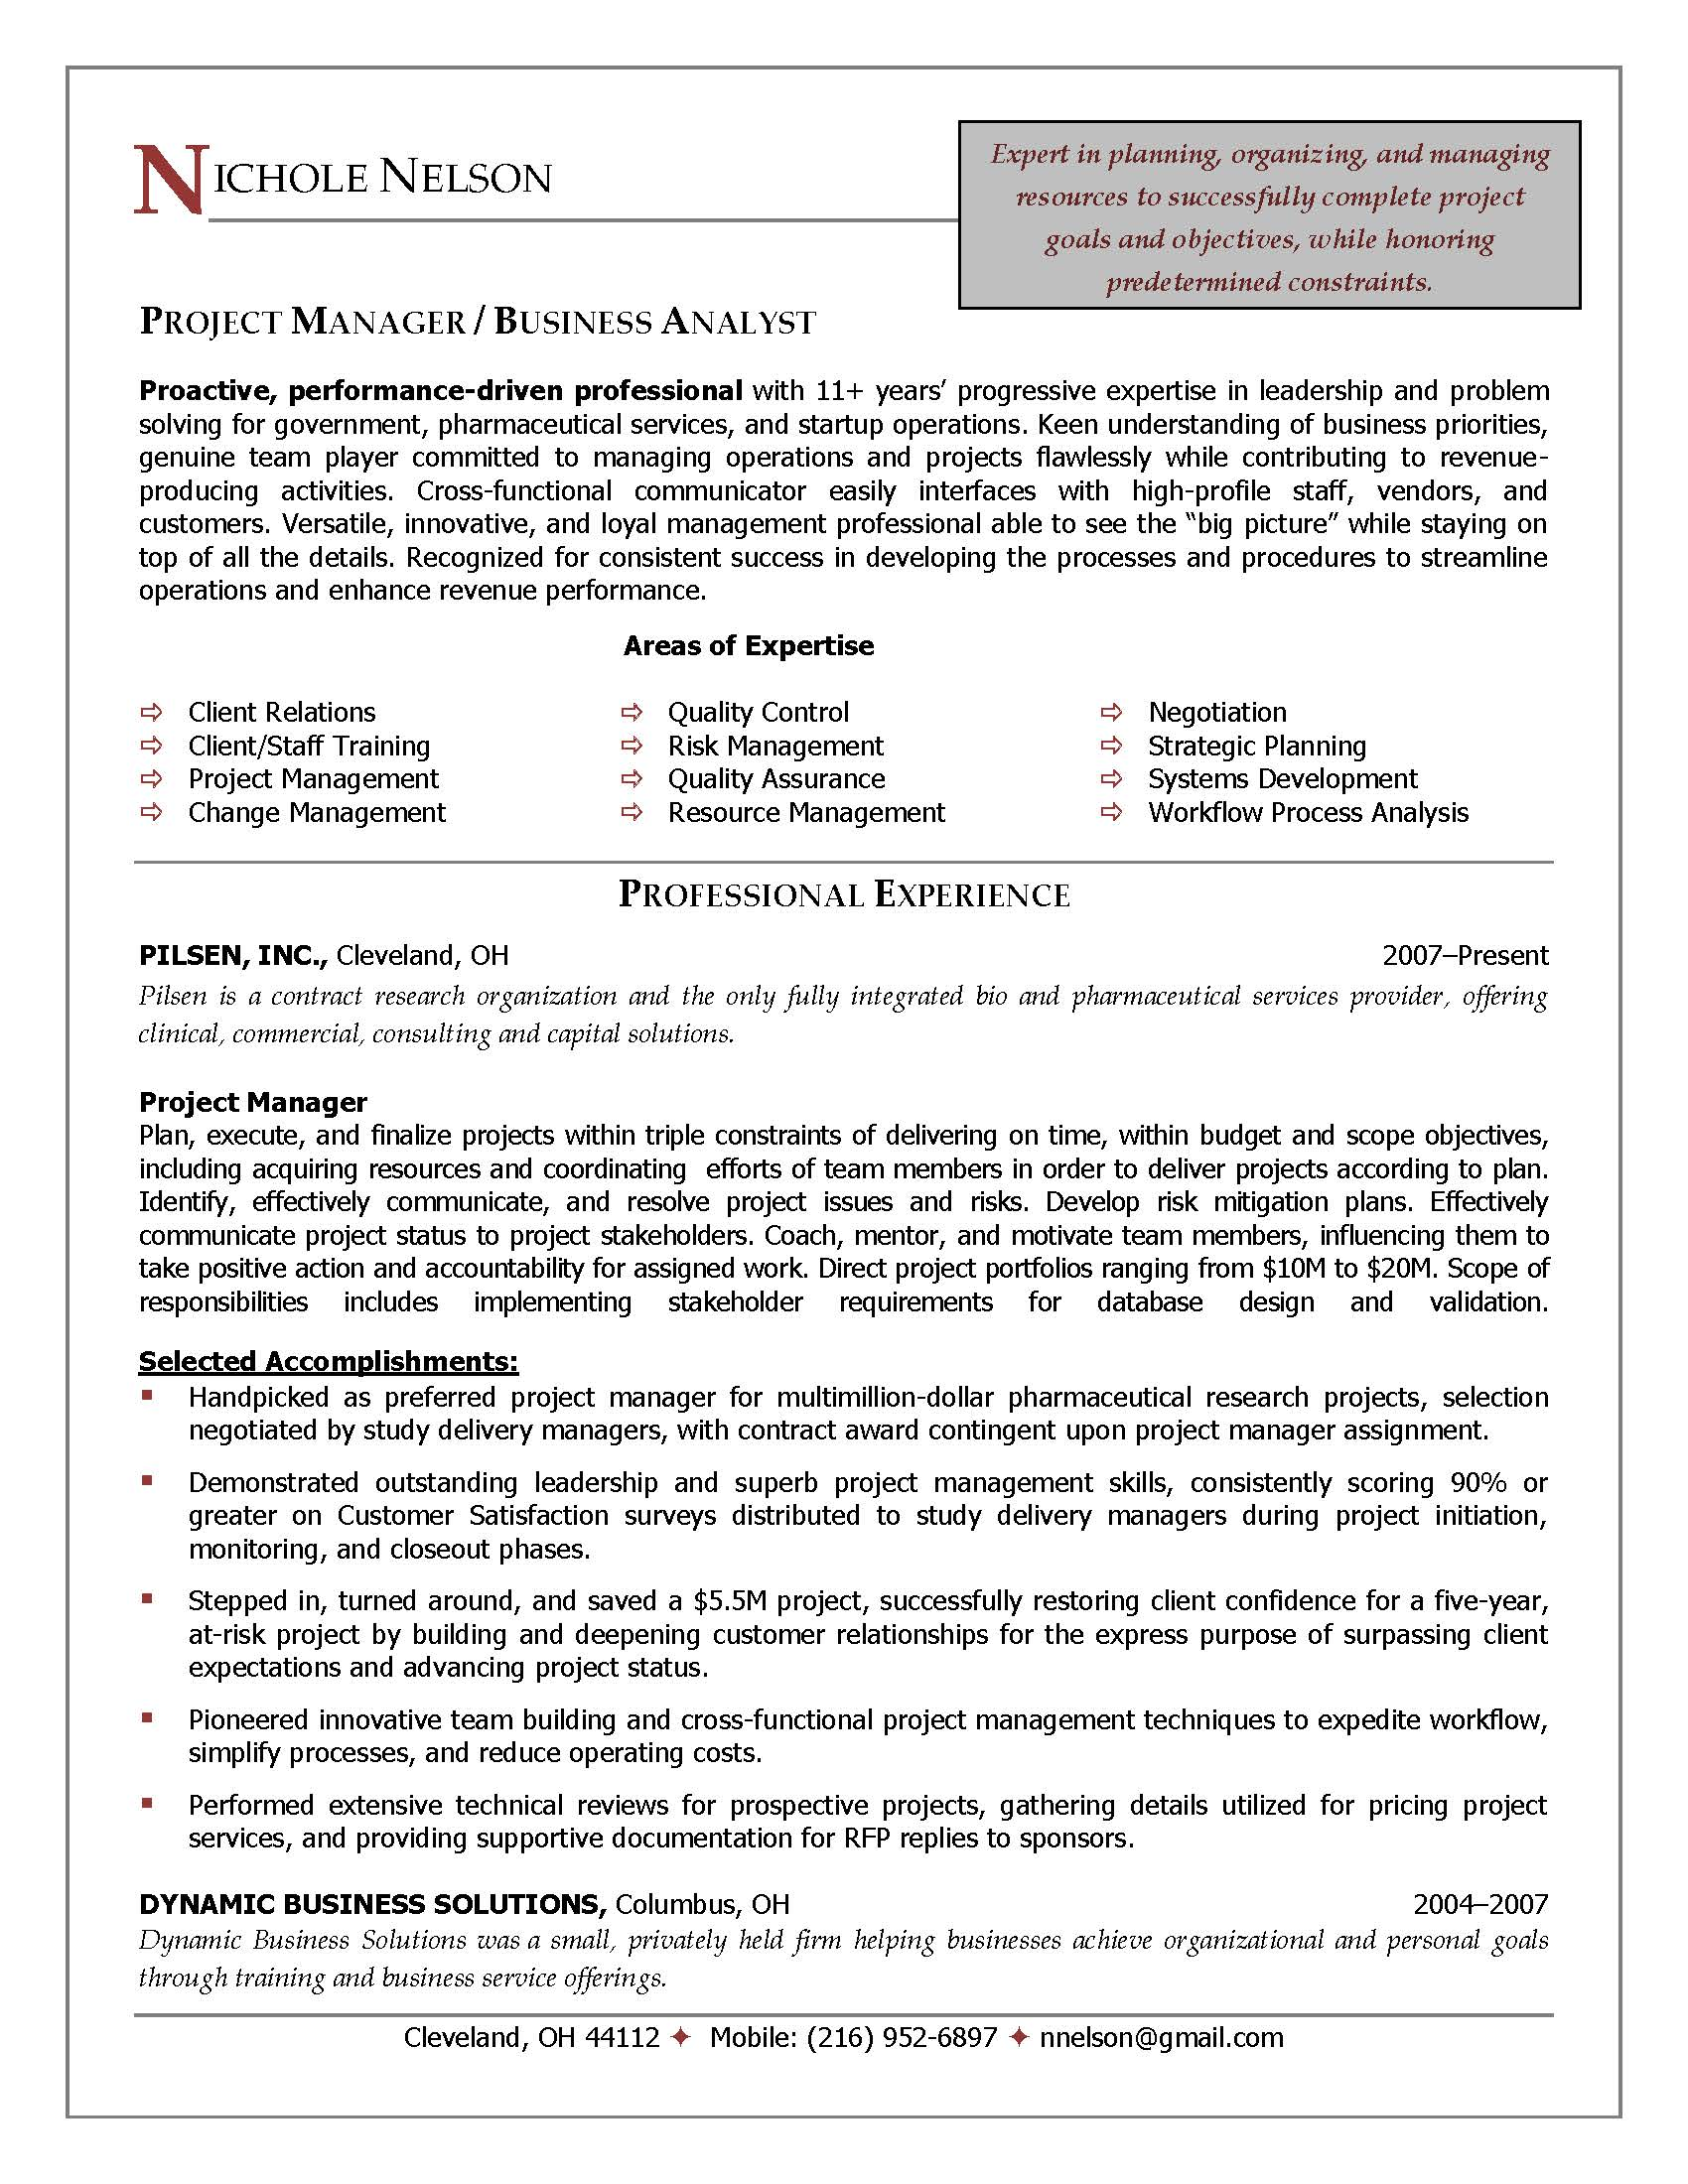 project manager resume sample provided by elite resume writing services - Program Manager Resume Sample